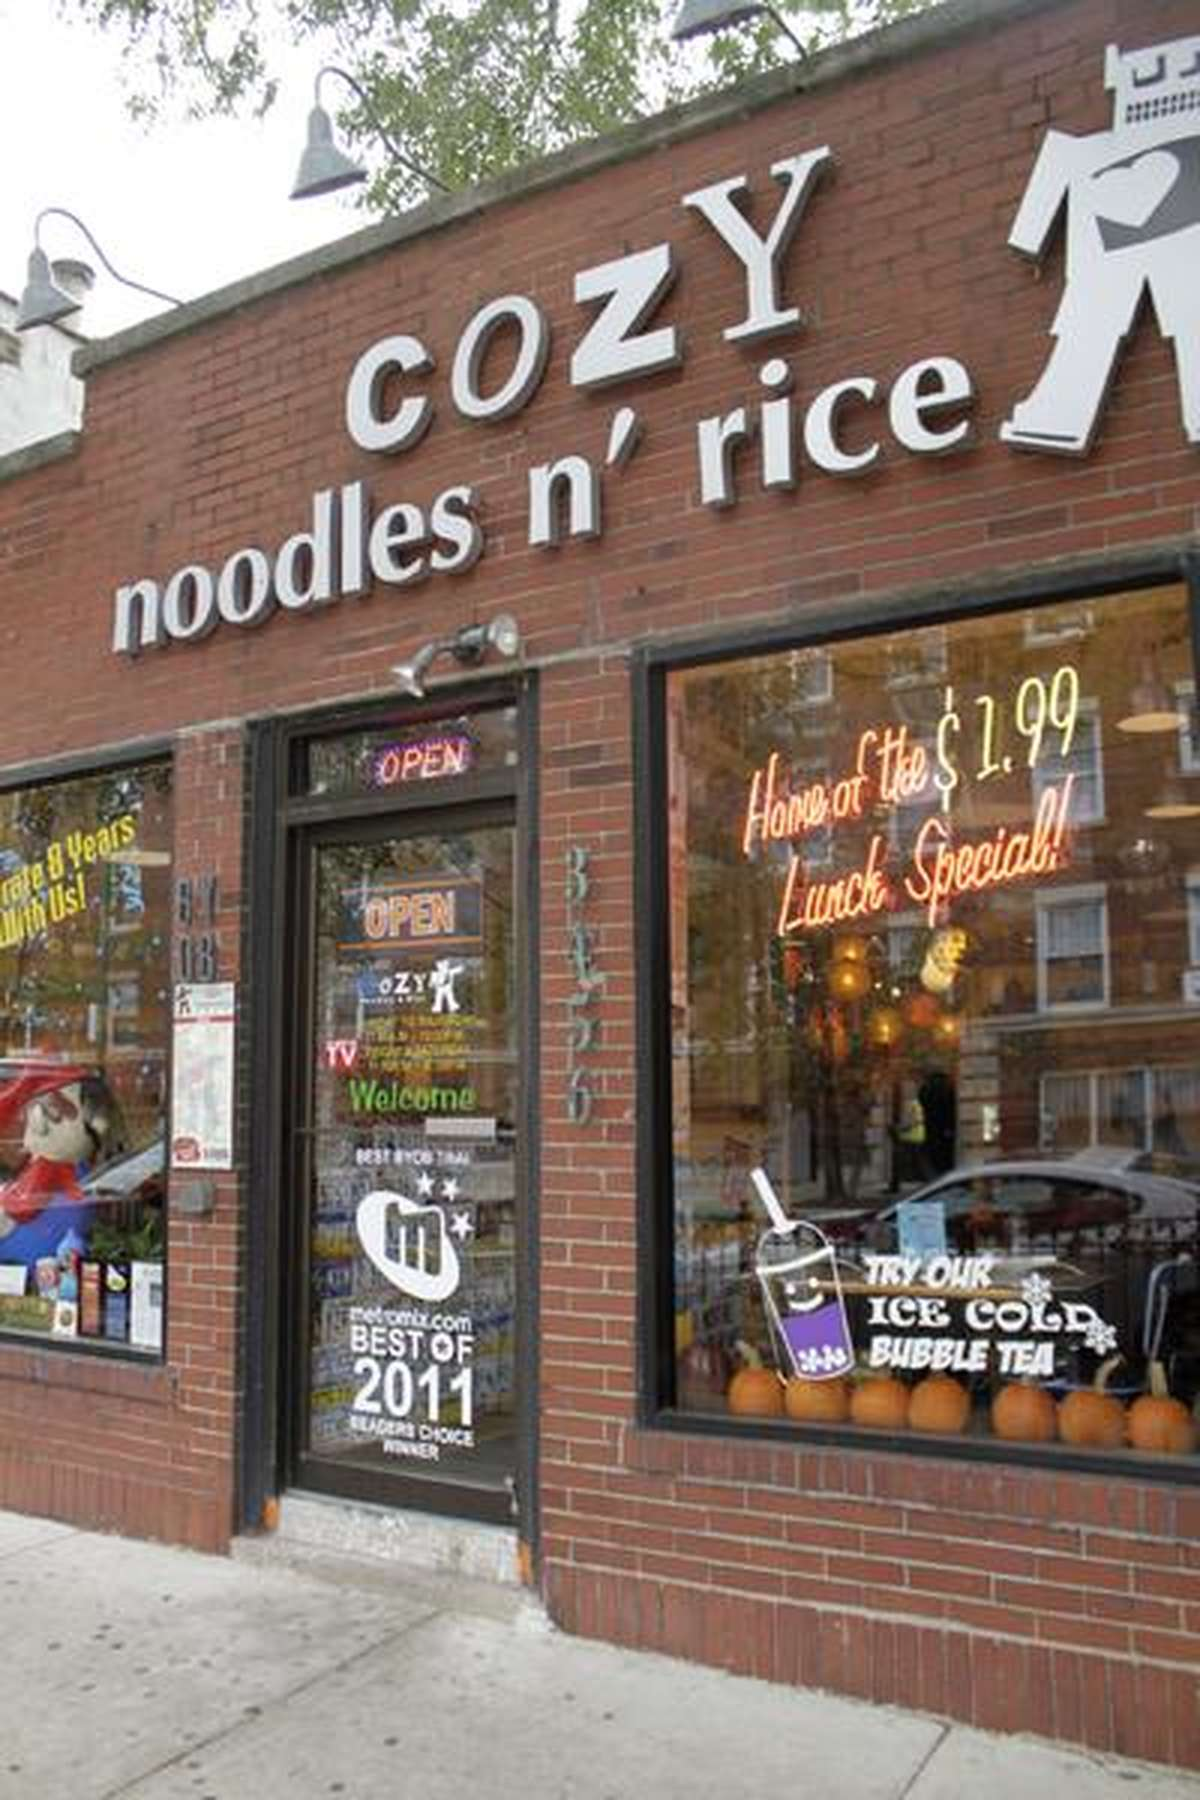 Cozy Noodles n' rice Chicago